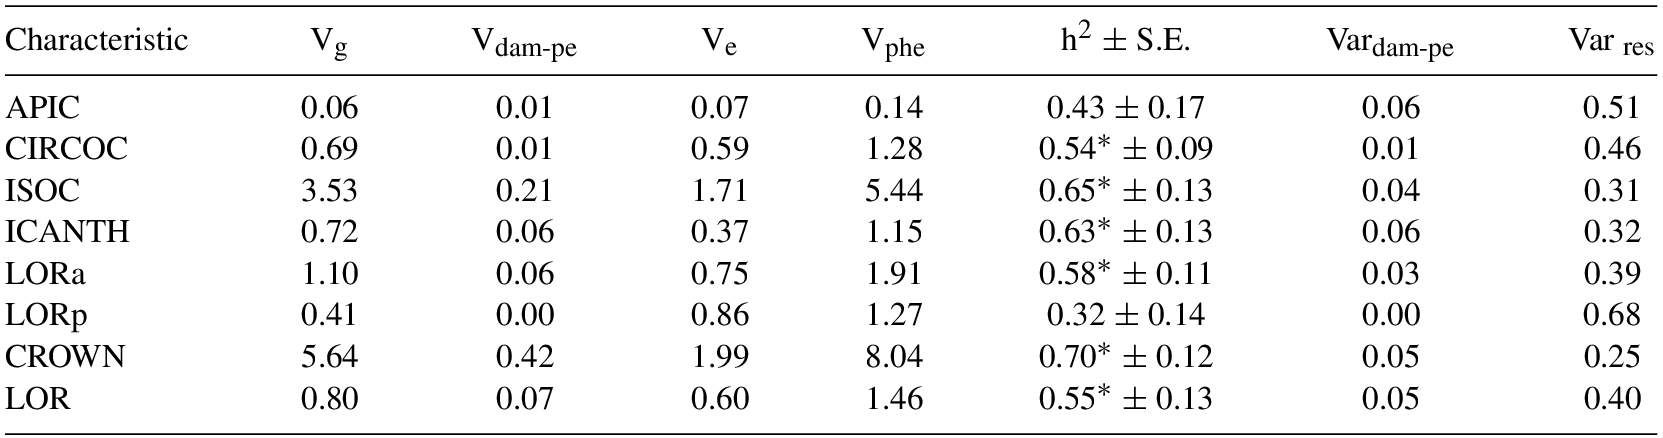 Characteristics and heritability analysis of head scales of the